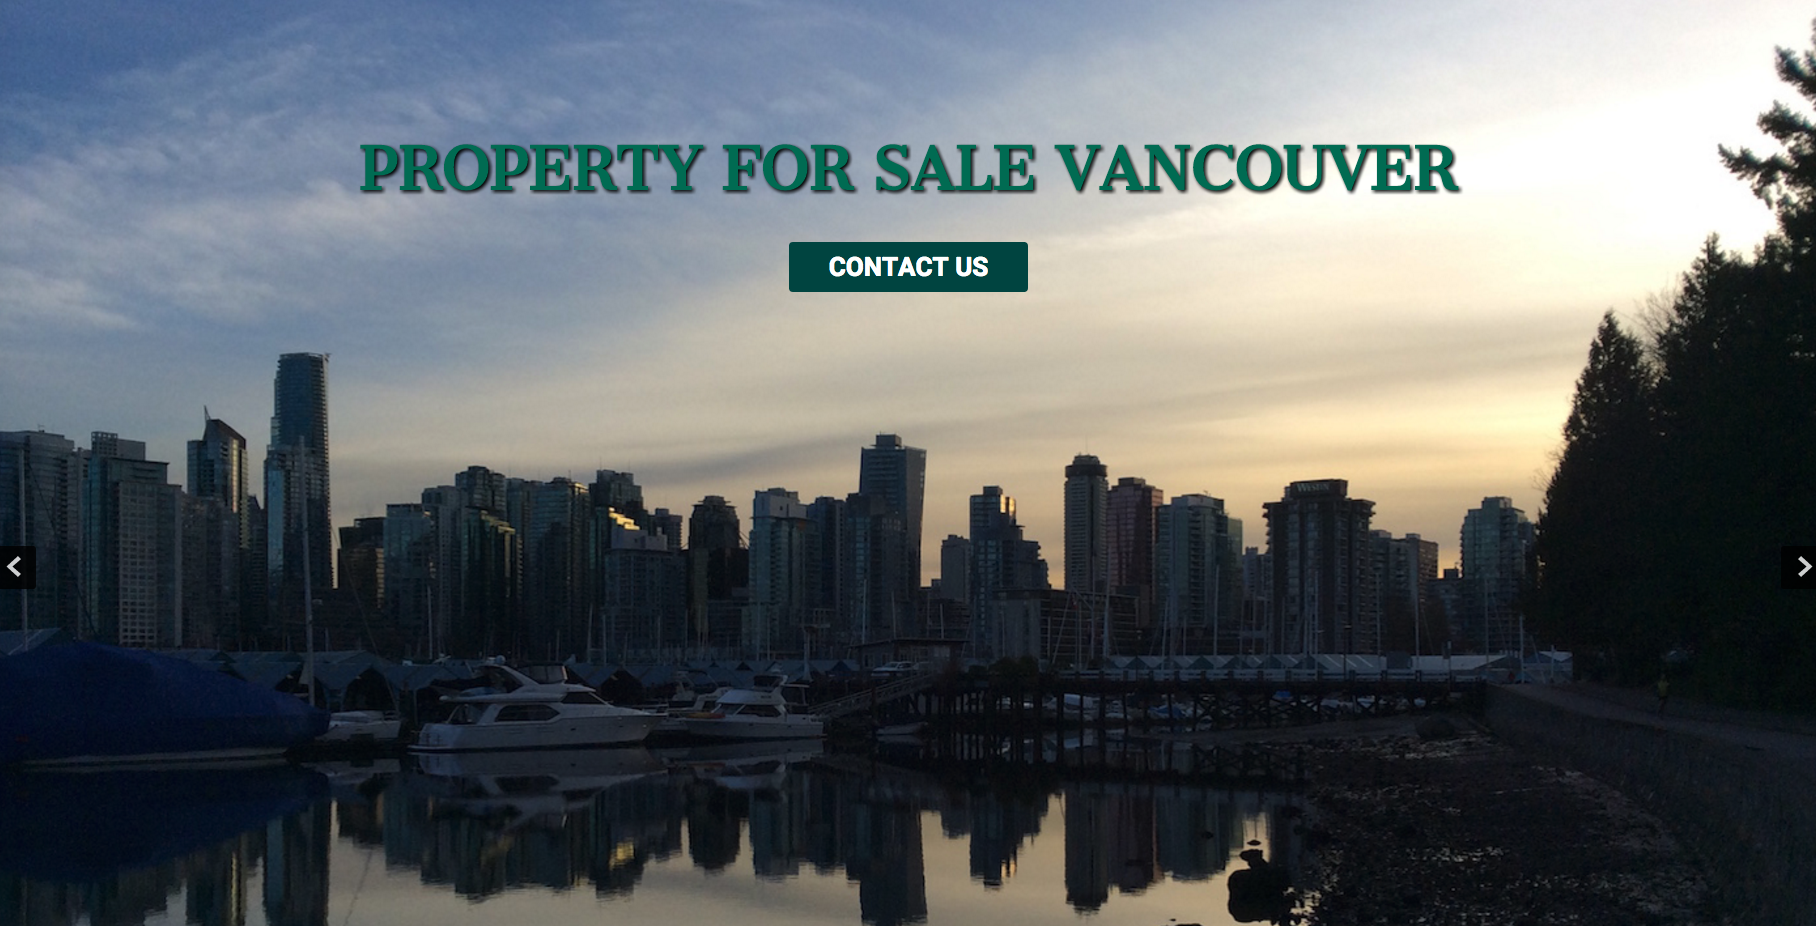 Property for sale Vancouver